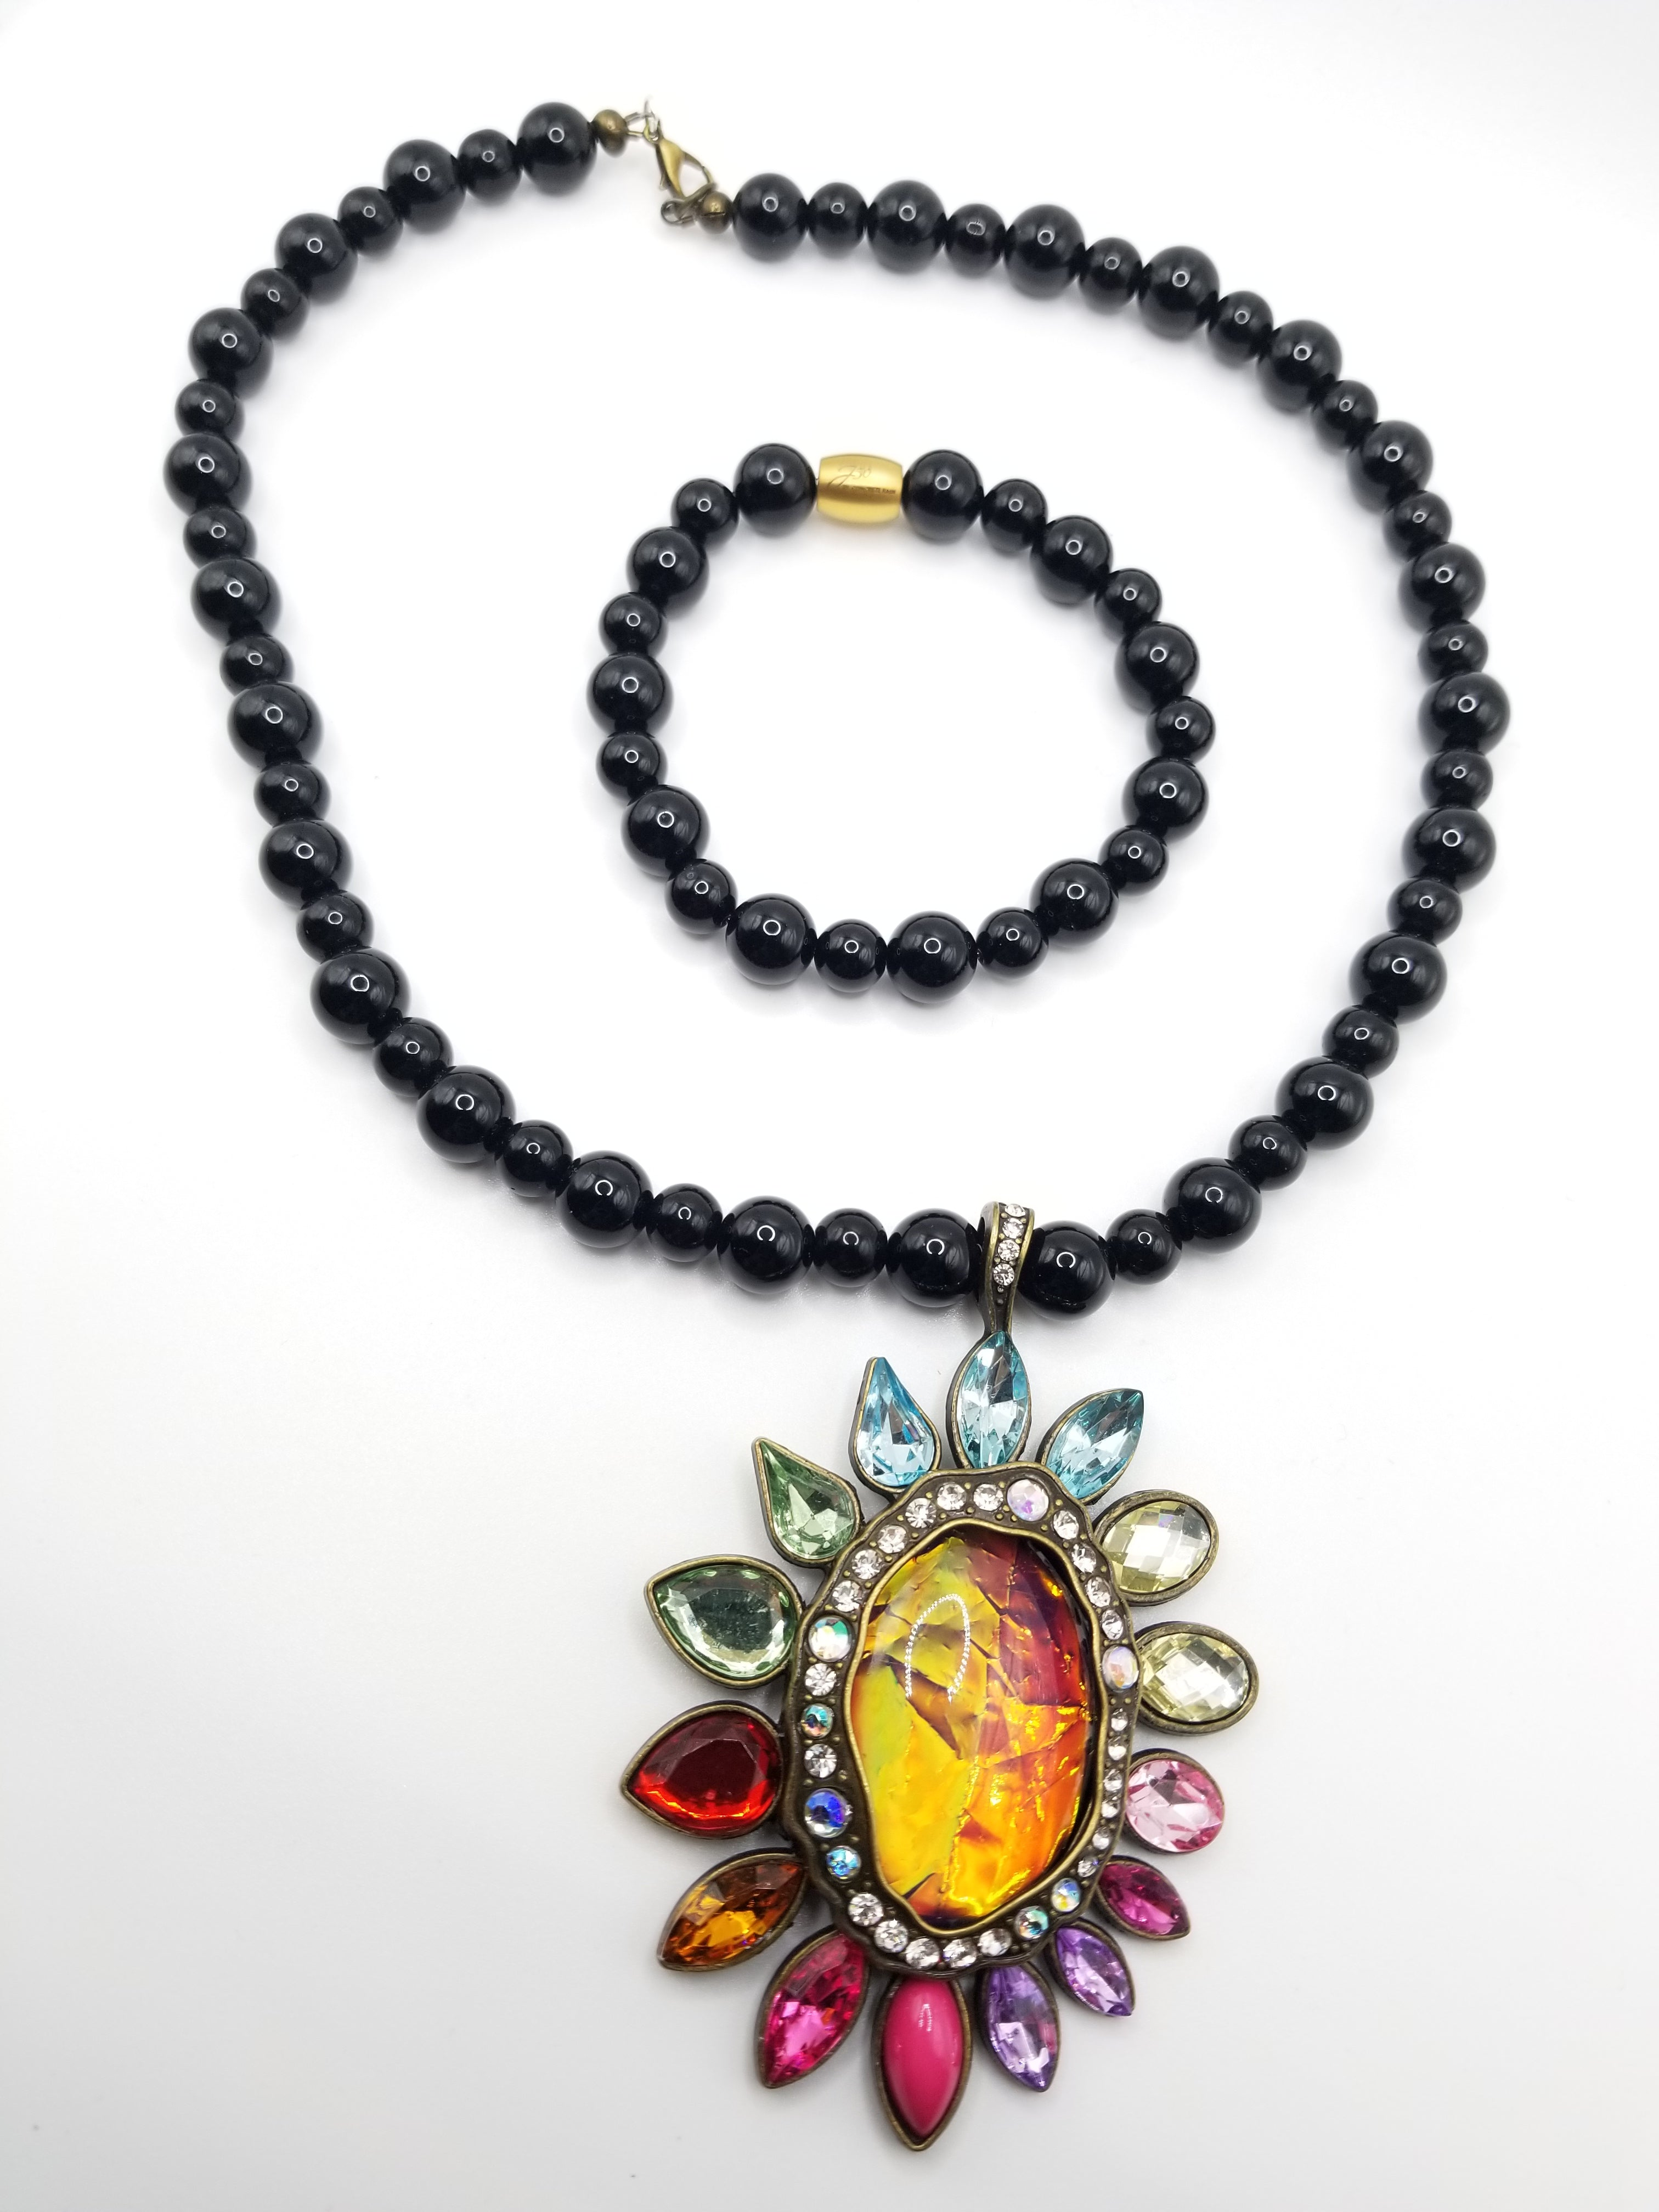 Black Onyx Necklace and Bracelet with Pendant